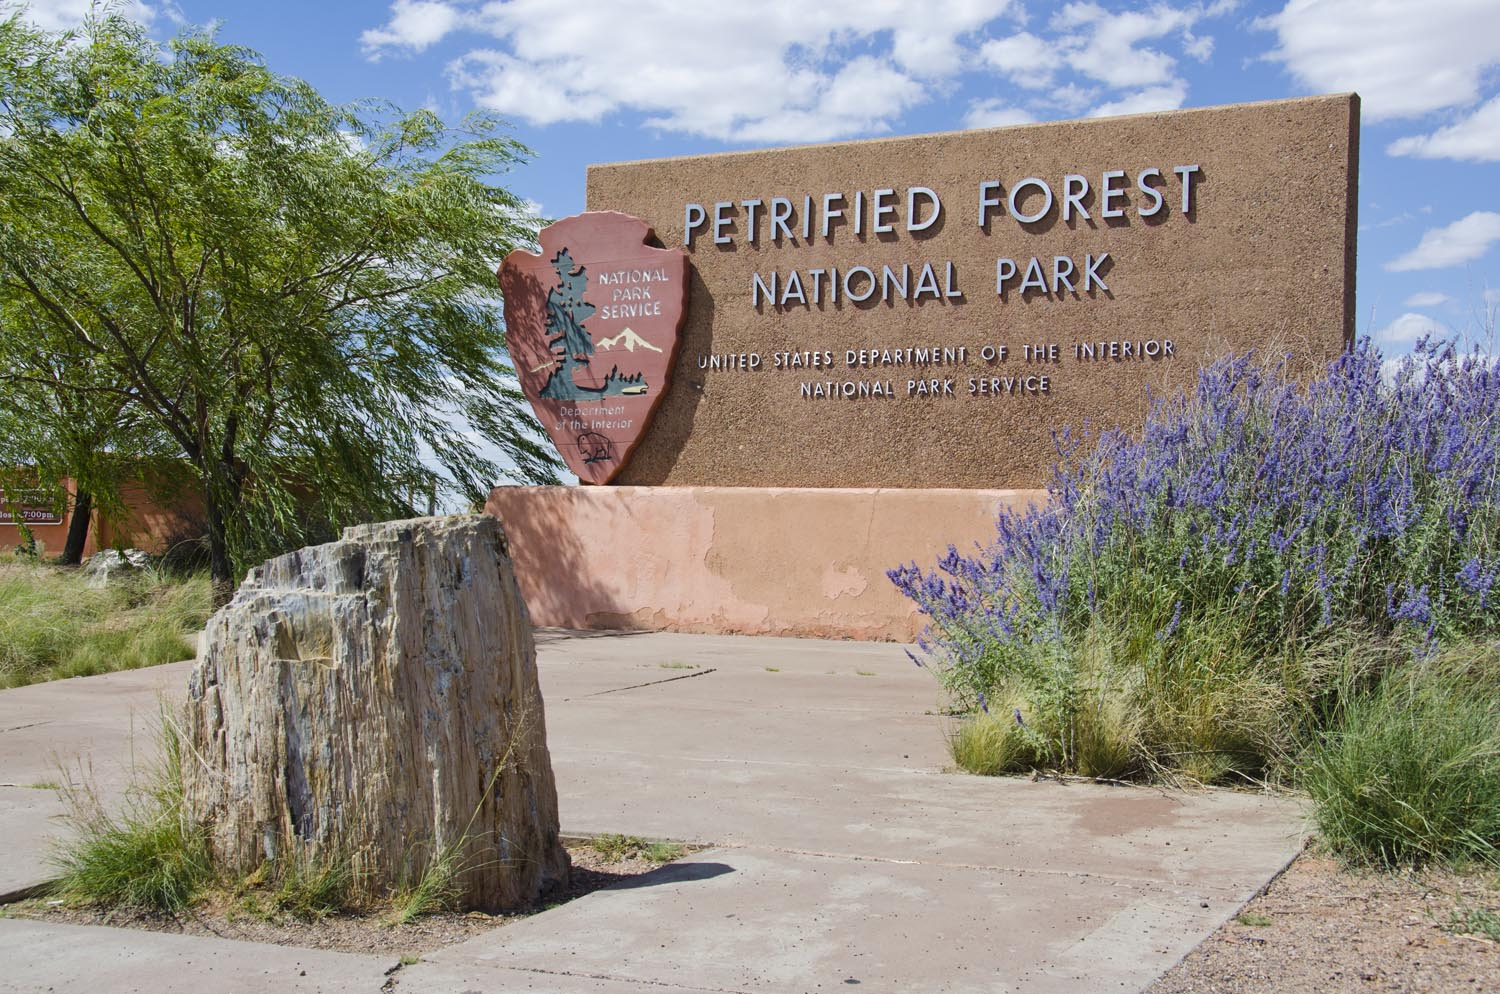 Painted Desert Visitors Center – part of a 23 building complex, the Visitors Center encompasses a self contained community with a gas station, residences, maintenance shop, restaurant, gift shop, restrooms and information center.  Visitors can enjoy park videos and ranger-led tours.